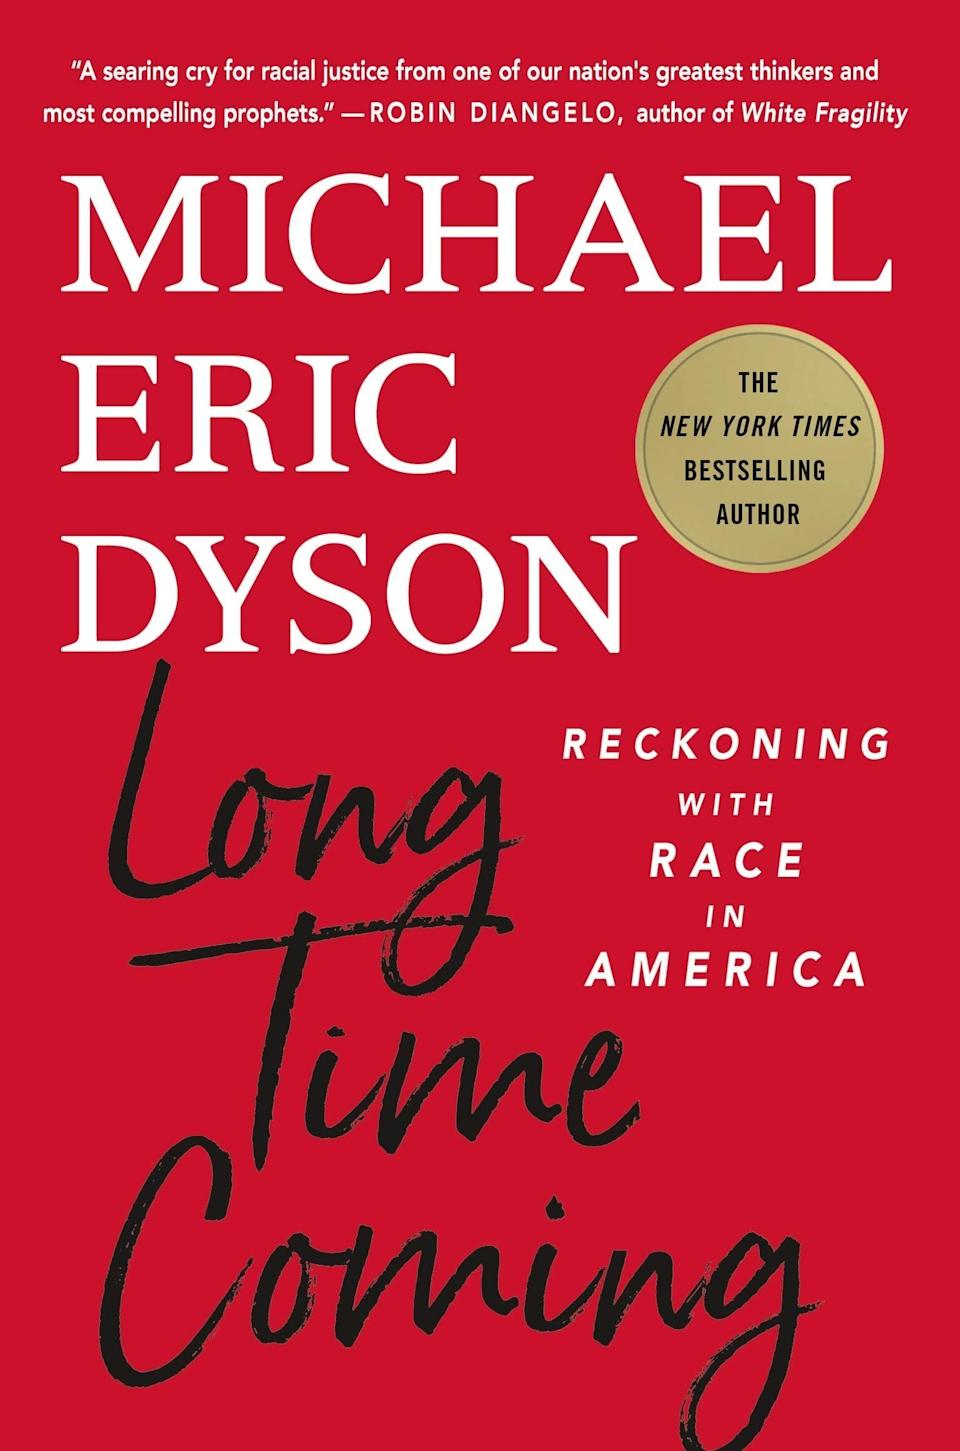 """In """"Long Time Coming,"""" Georgetown professor Michael Eric Dyson calls on America to reckon with race and begin the road to redemption. Each of the five chapters is addressed to a Black martyr (Breanna Taylor, Sandra Bland, among others) and dissects America's long history with systematic racism. Dyson ends with a plea of hope for the country. Read more about it on <a href=""""https://www.goodreads.com/book/show/55005143"""">Goodreads</a>, and grab a copy on <a href=""""https://amzn.to/3ojrb8J"""">Amazon</a> or <a href=""""https://fave.co/3mucVJw"""">Bookshop</a>.<br /><br /><i>Expected release date:</i> <i>December 1</i>"""